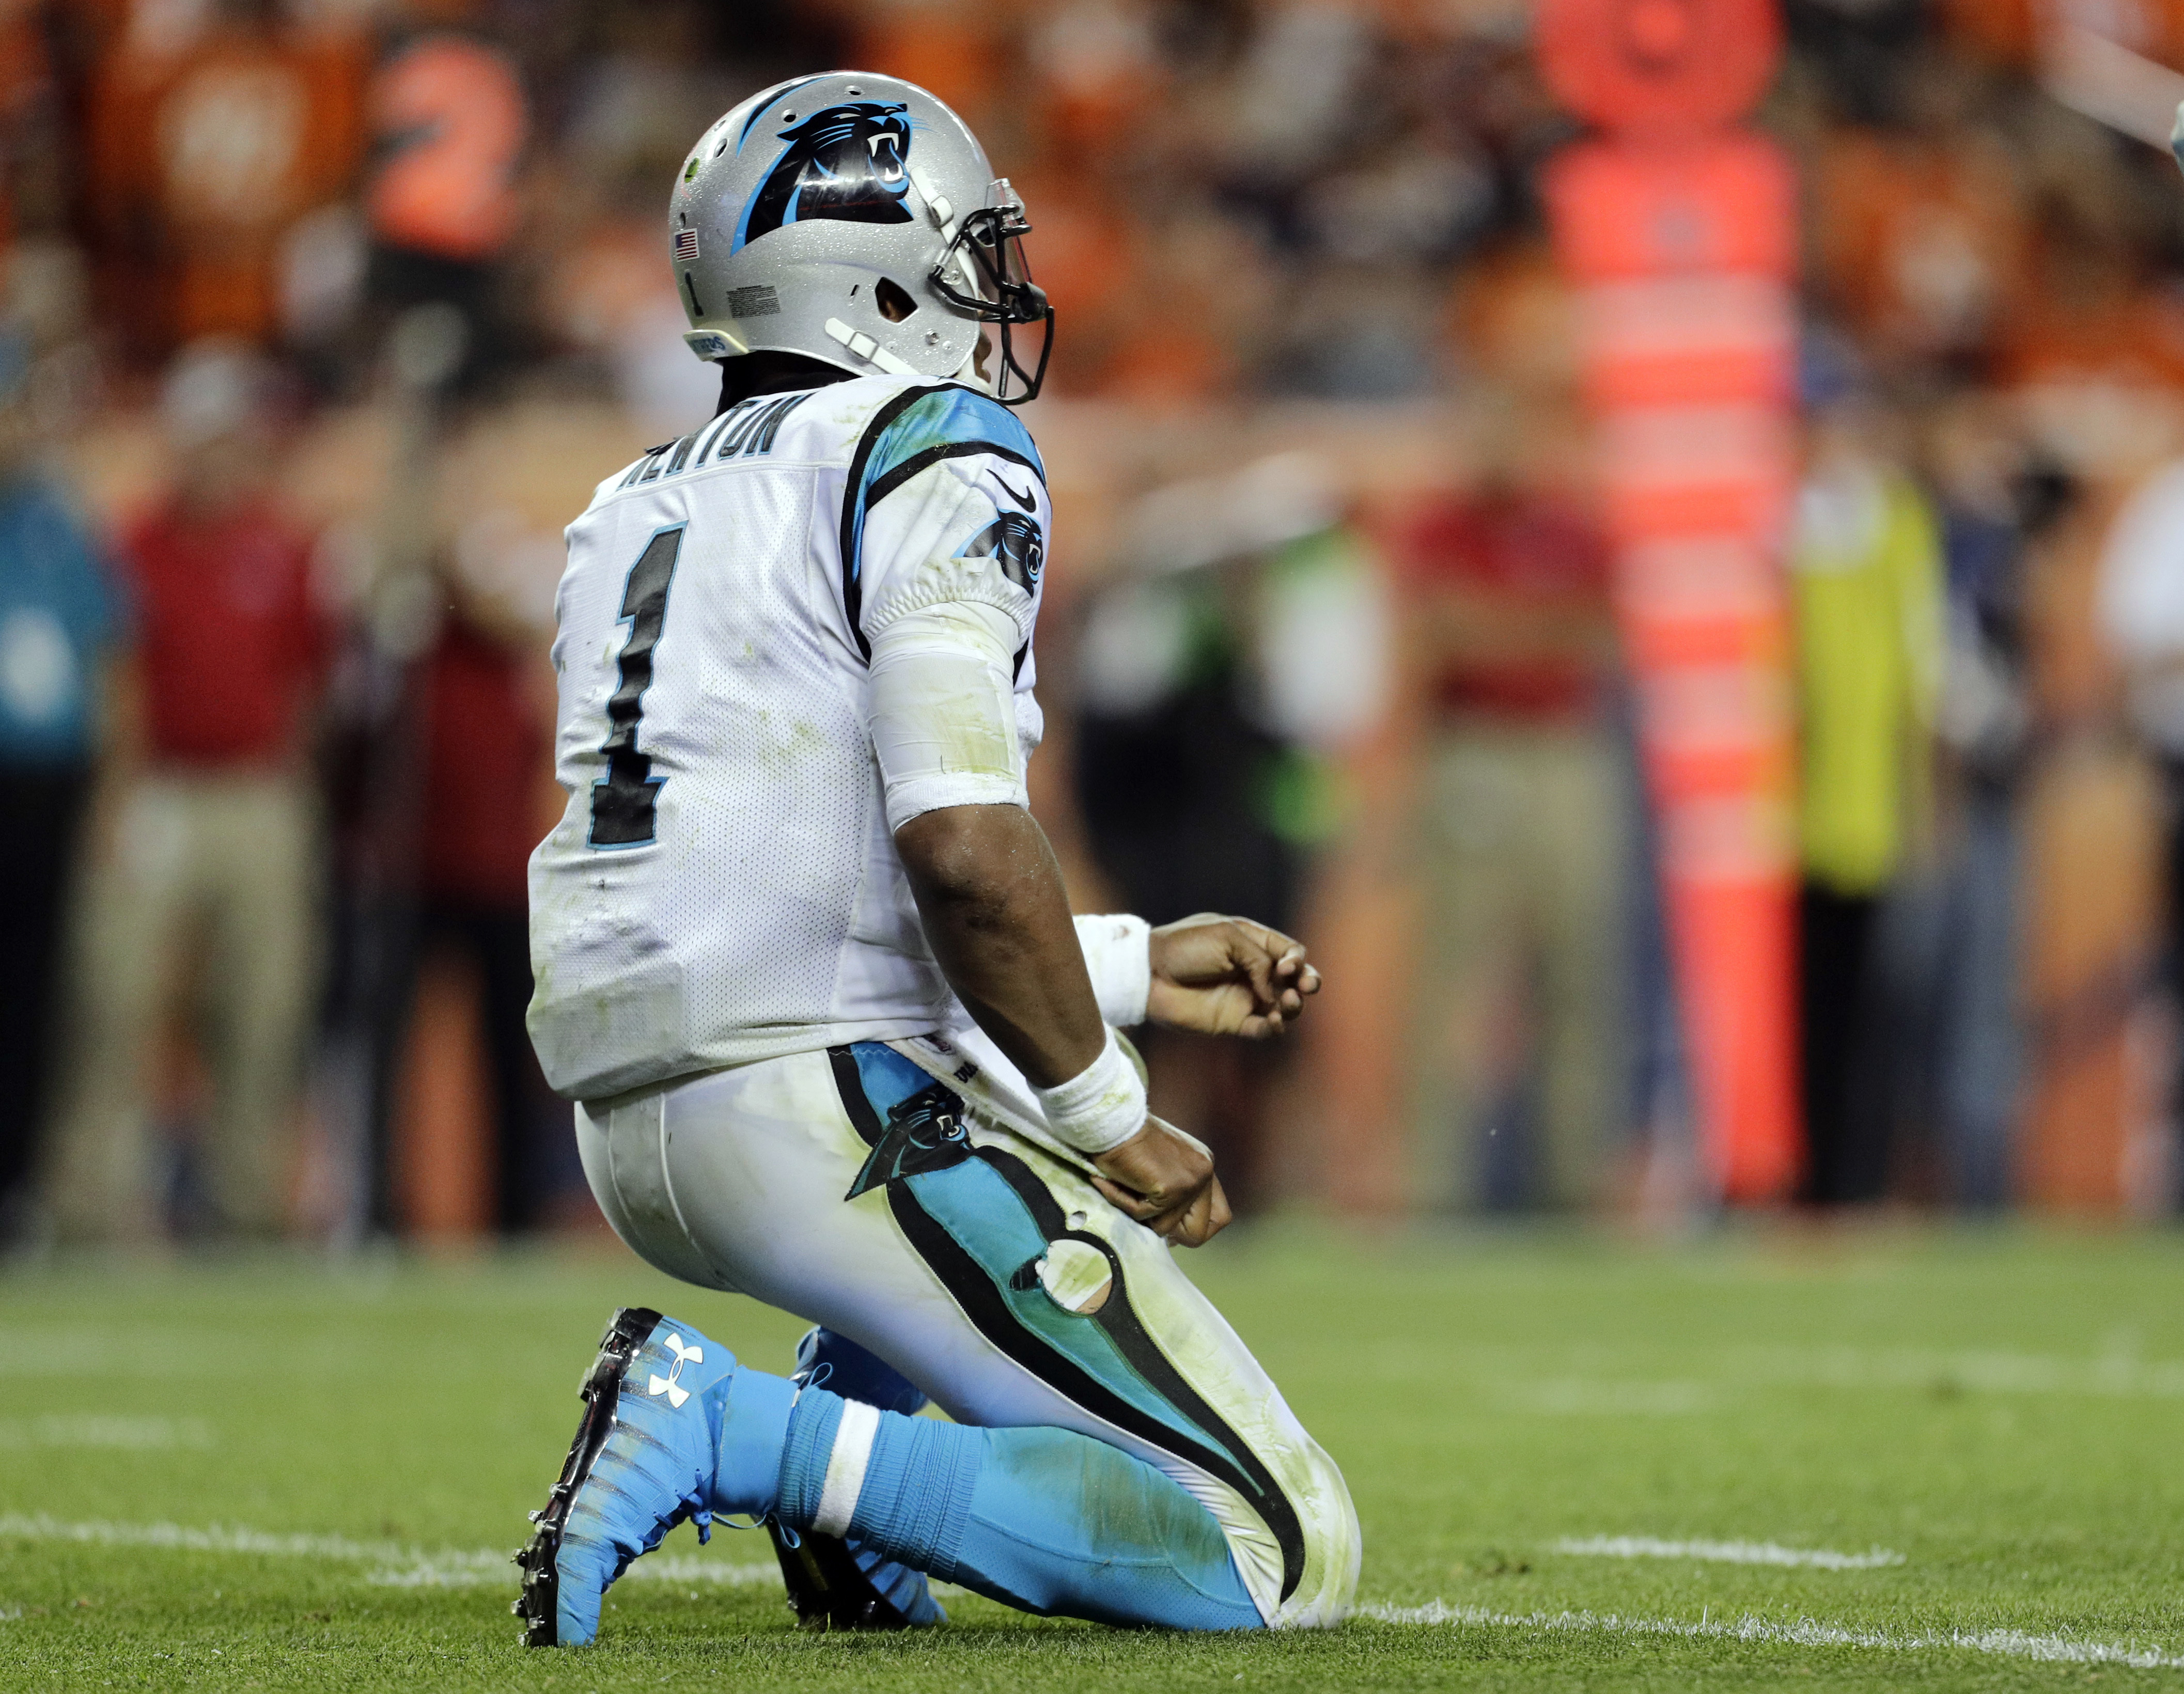 FILE - Thursday, Sept. 8, 2016, file photo, Carolina Panthers quarterback Cam Newton (1) takes a knee after being hit against the Denver Broncos during the second half of an NFL football game in Denver. (AP Photo/Joe Mahoney, File)